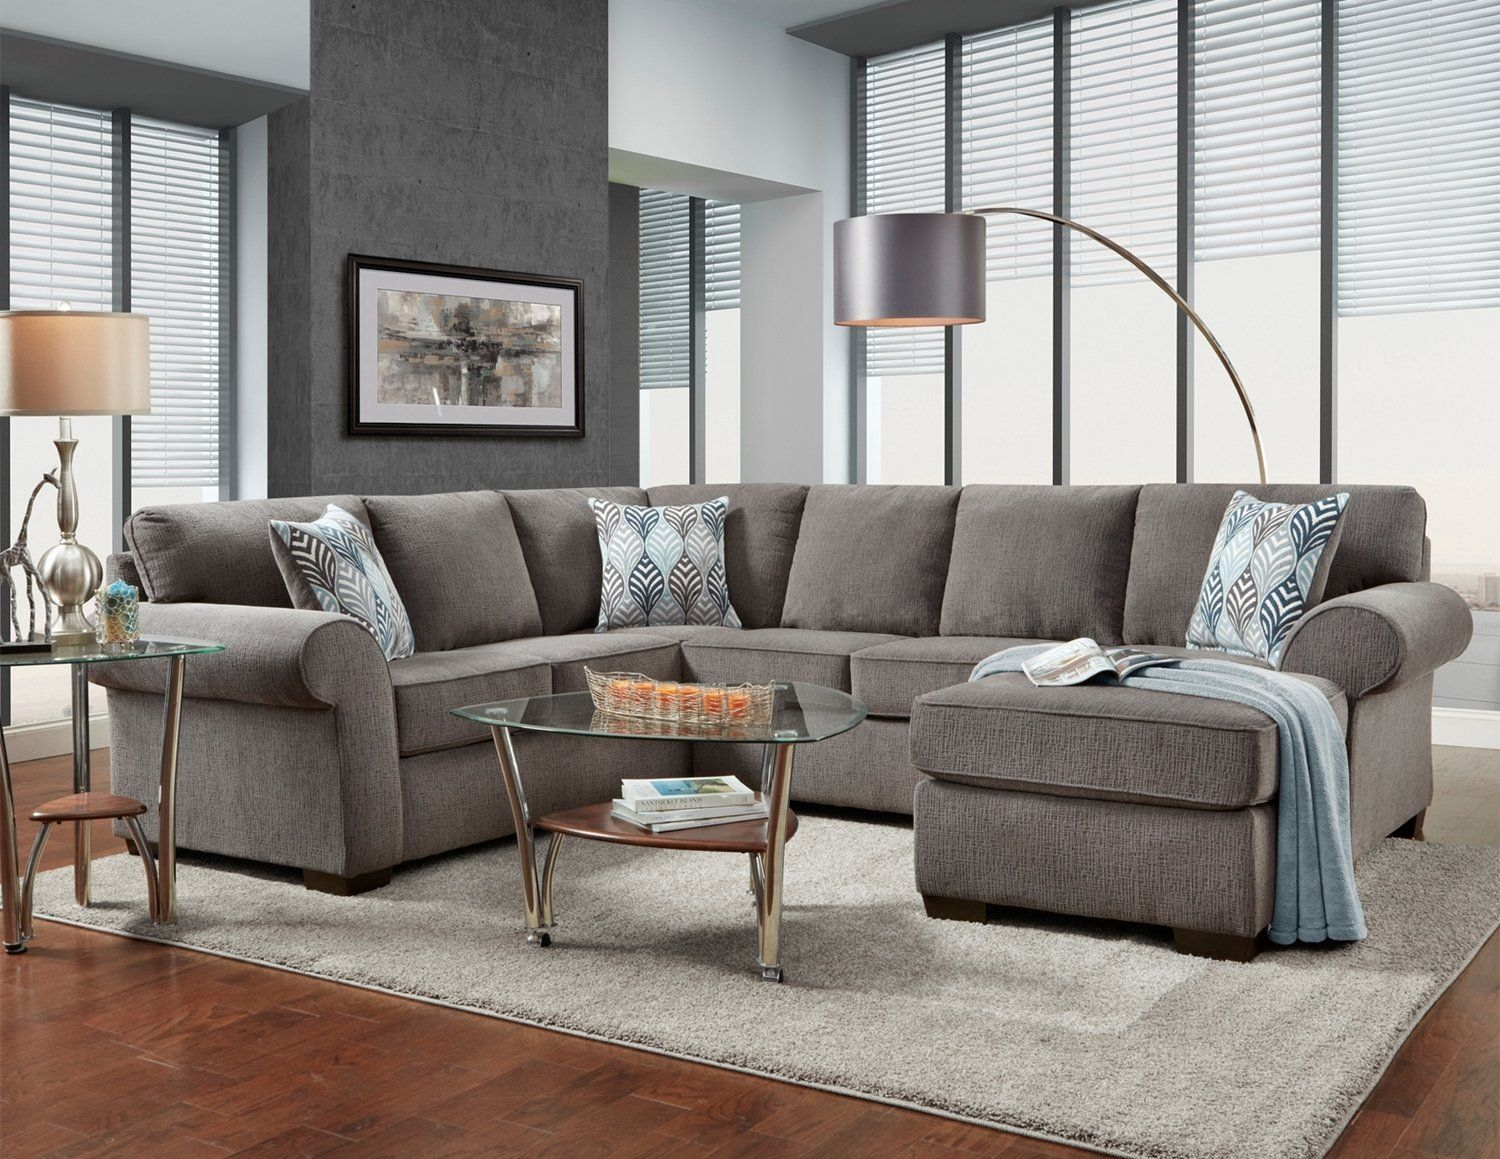 Affordable Furniture Charisma Smoke Sectional Sofa